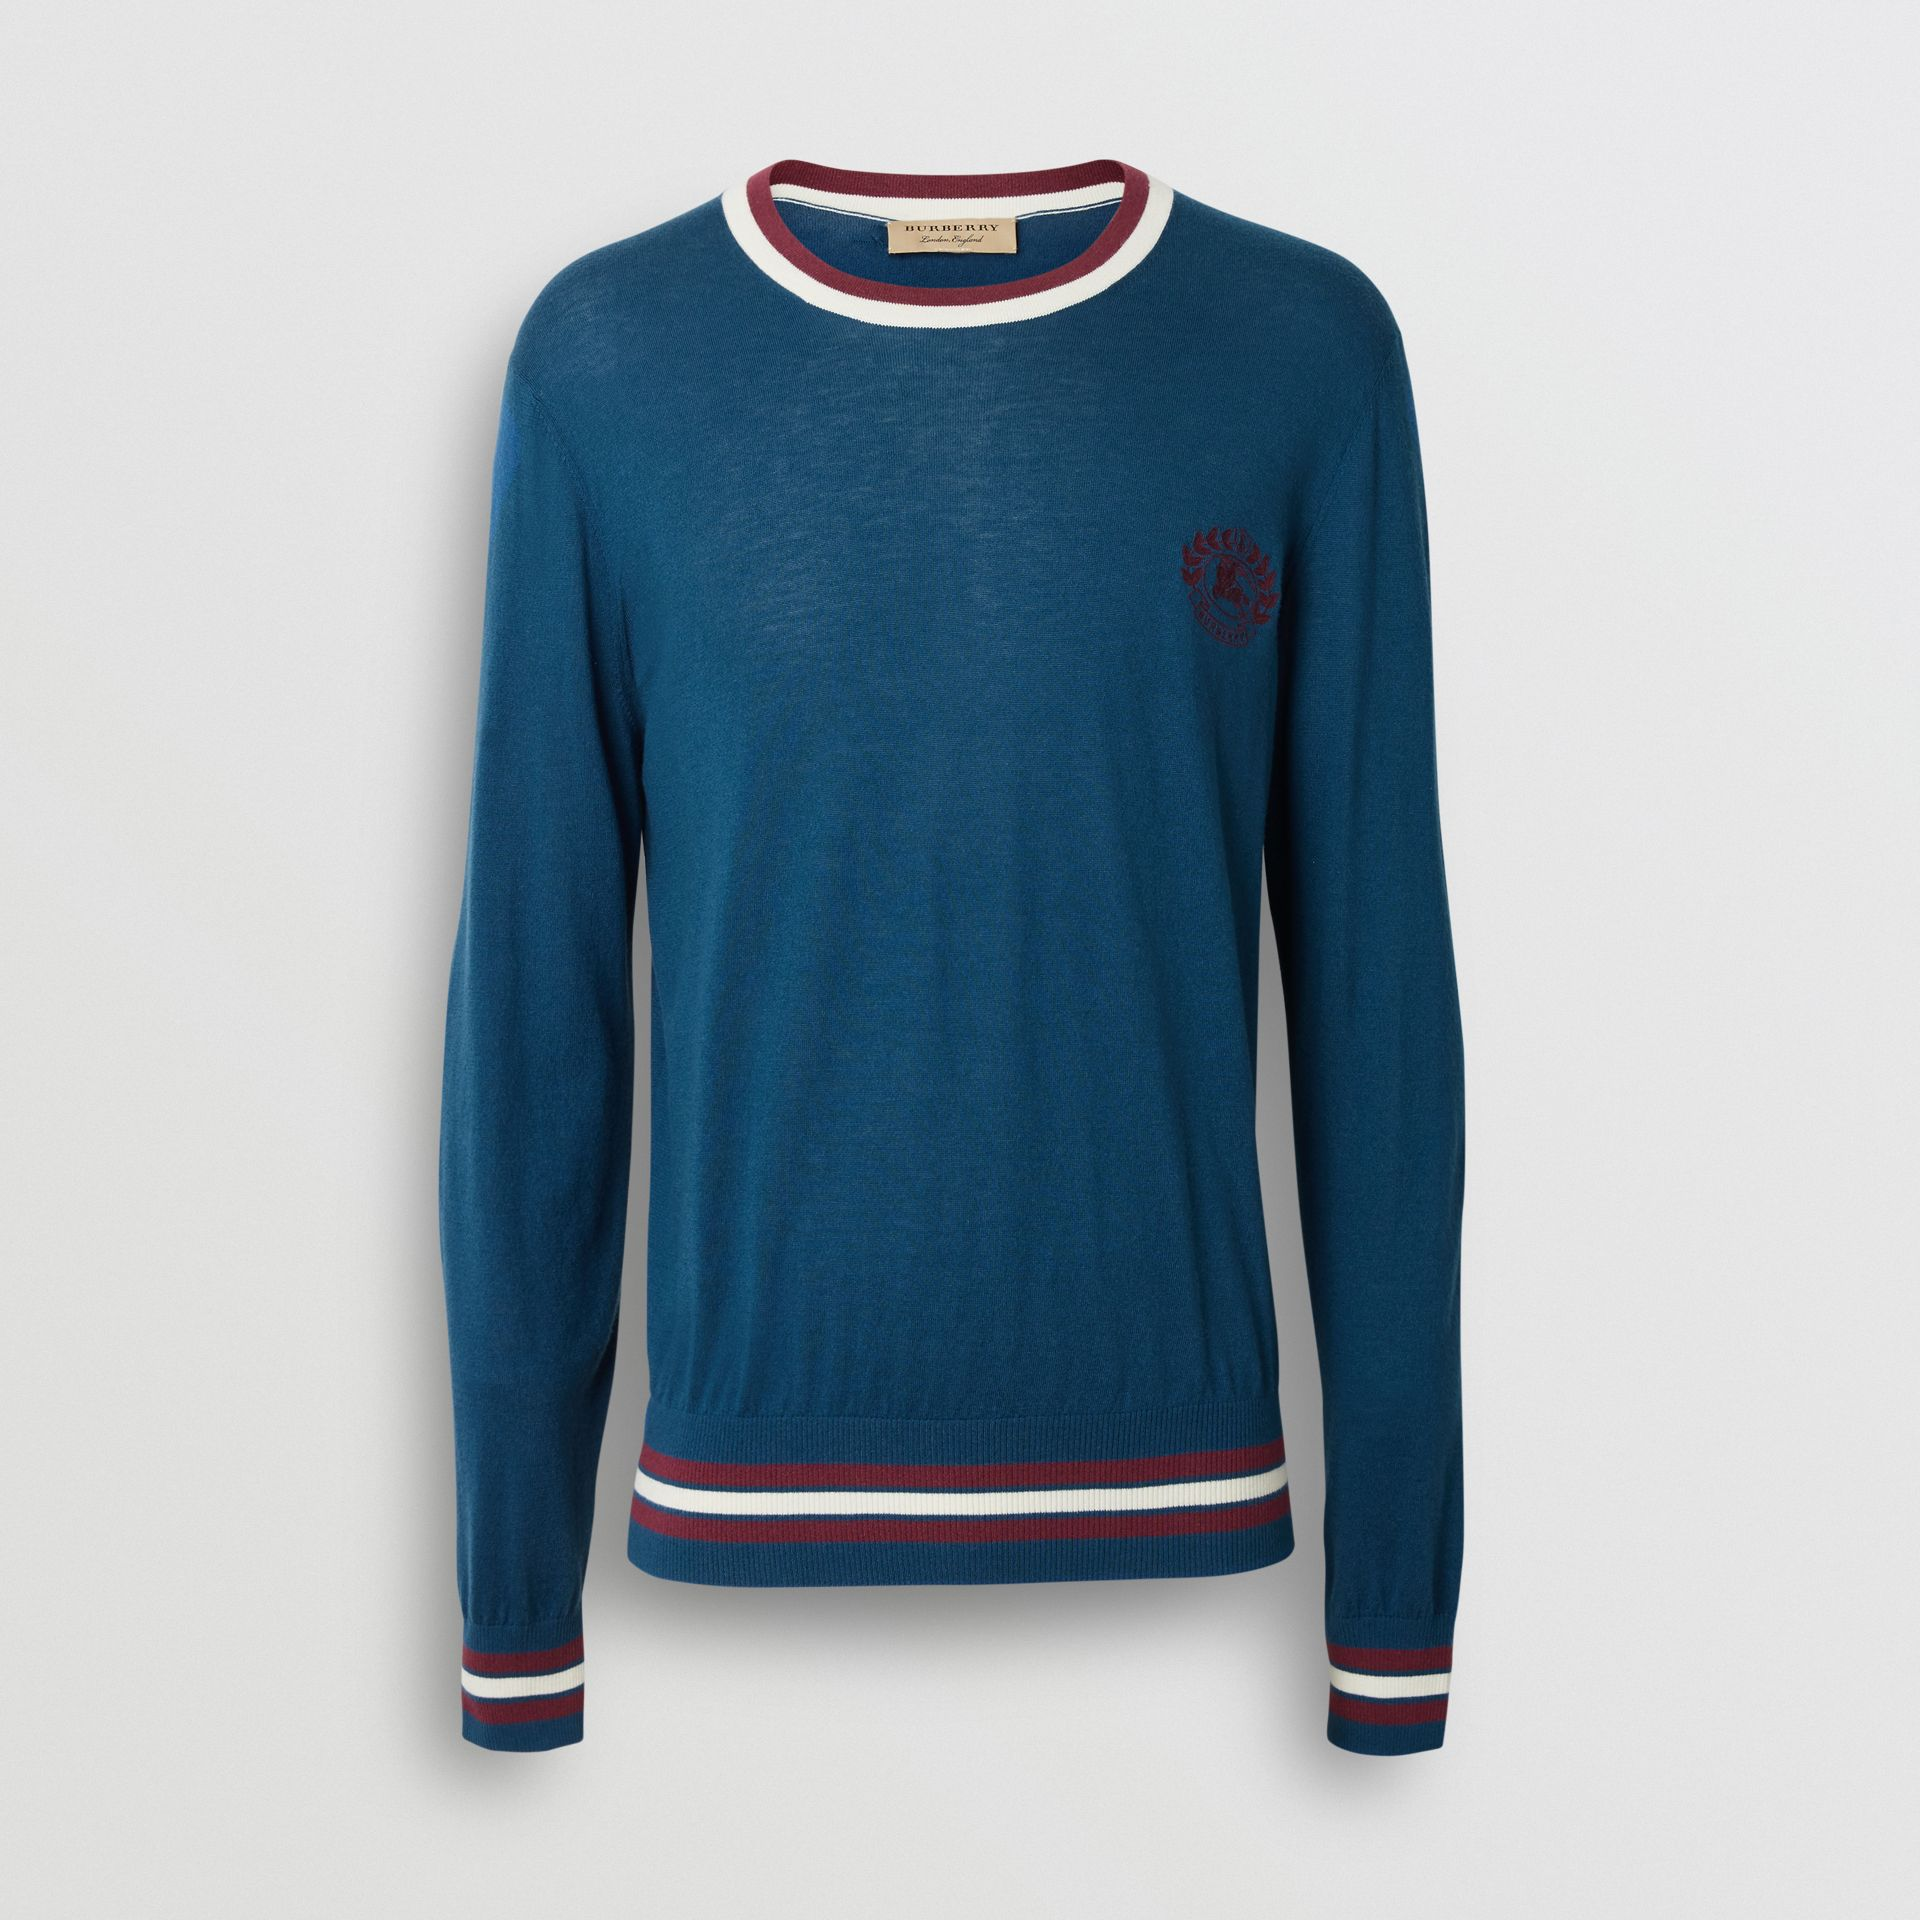 Embroidered Crest Cotton Silk Sweater in Dark Teal Blue - Men | Burberry - gallery image 3